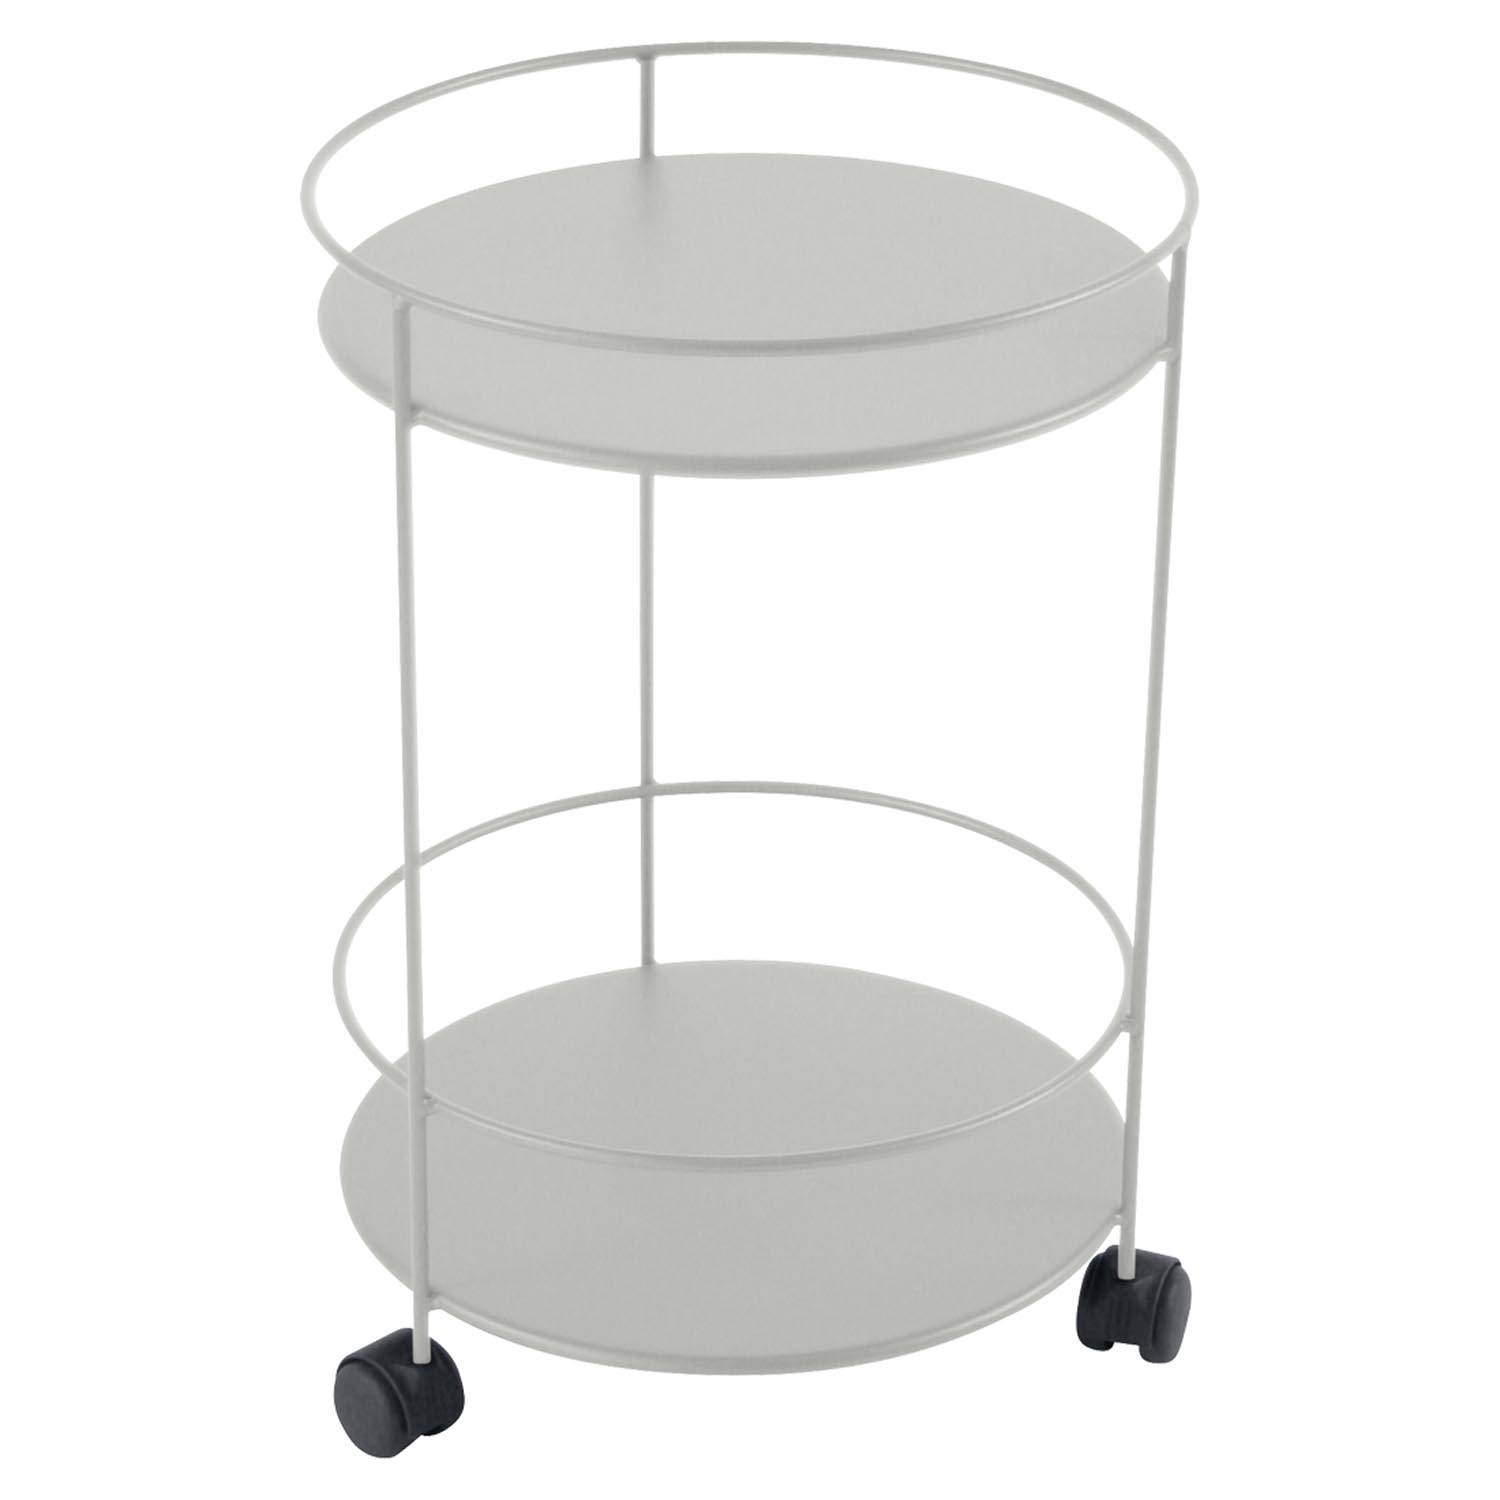 Fermob Small Table Perforated Ø40, Steel grey